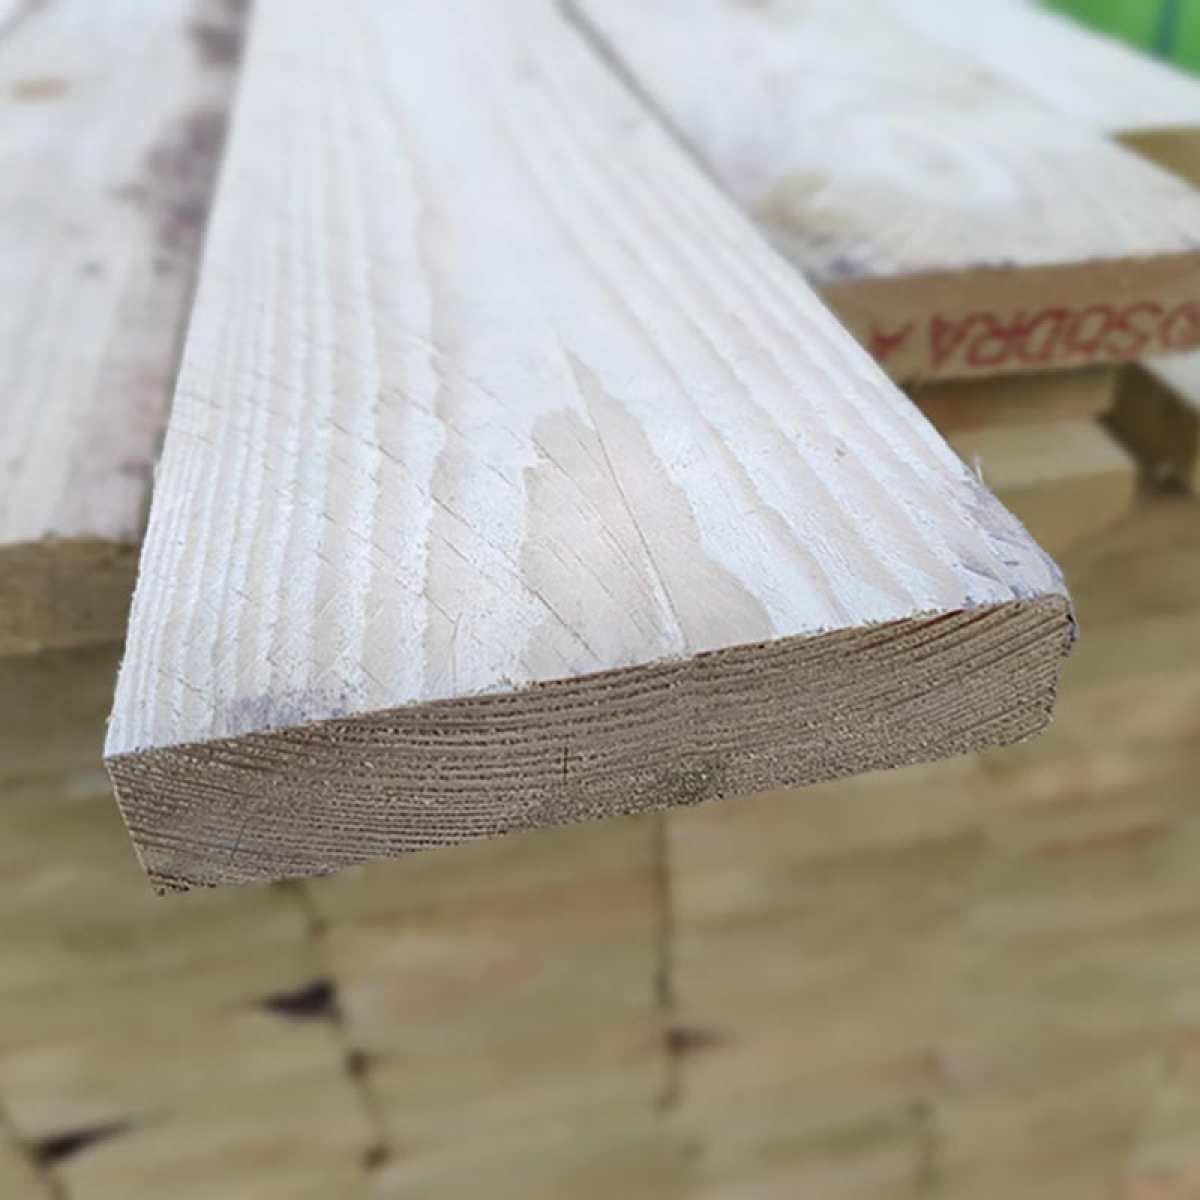 yorkshire boarding fence boards 2 websterstimber 800px by Image by Websters Timber